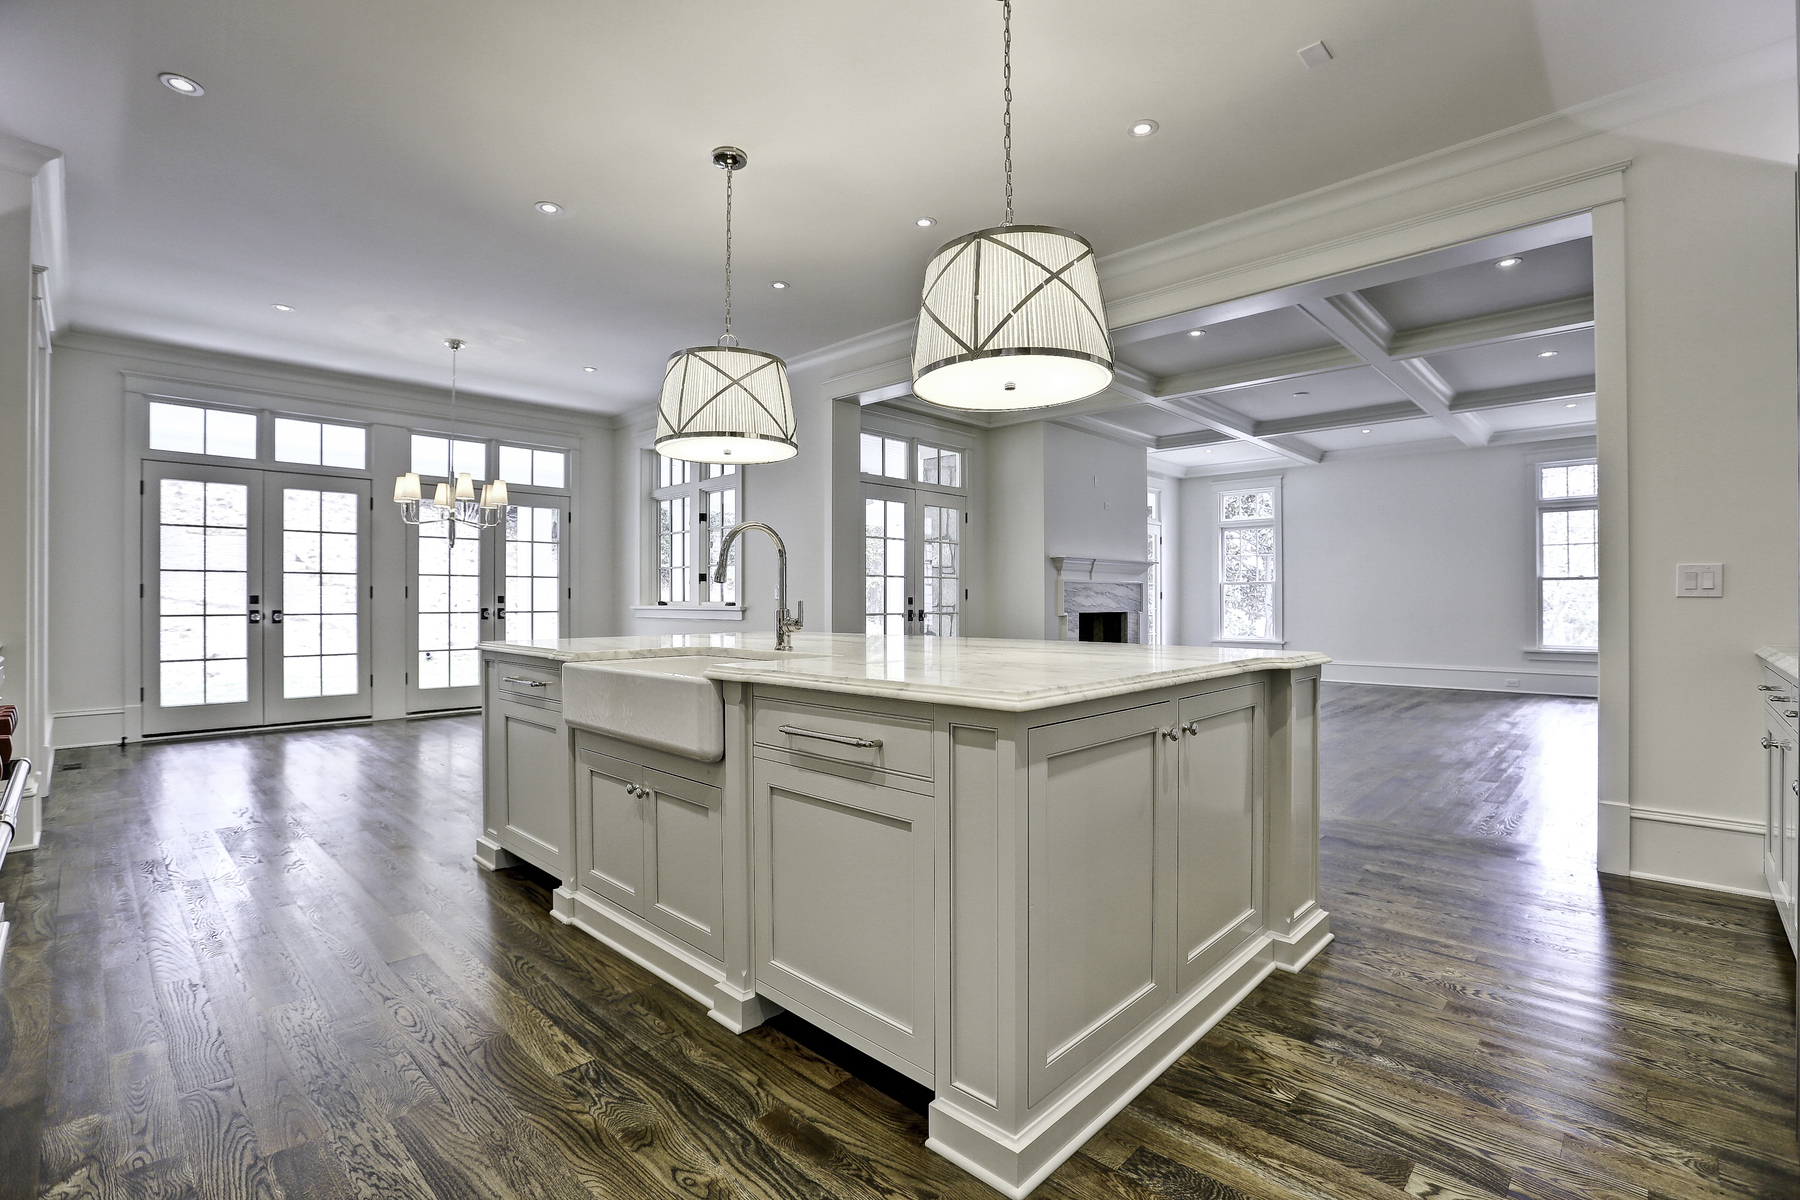 Additional photo for property listing at Deluxe Custom New Construction by Jackbilt Homes on Sought-After Street 479 Argonne Drive NW Atlanta, Γεωργια 30305 Ηνωμενεσ Πολιτειεσ